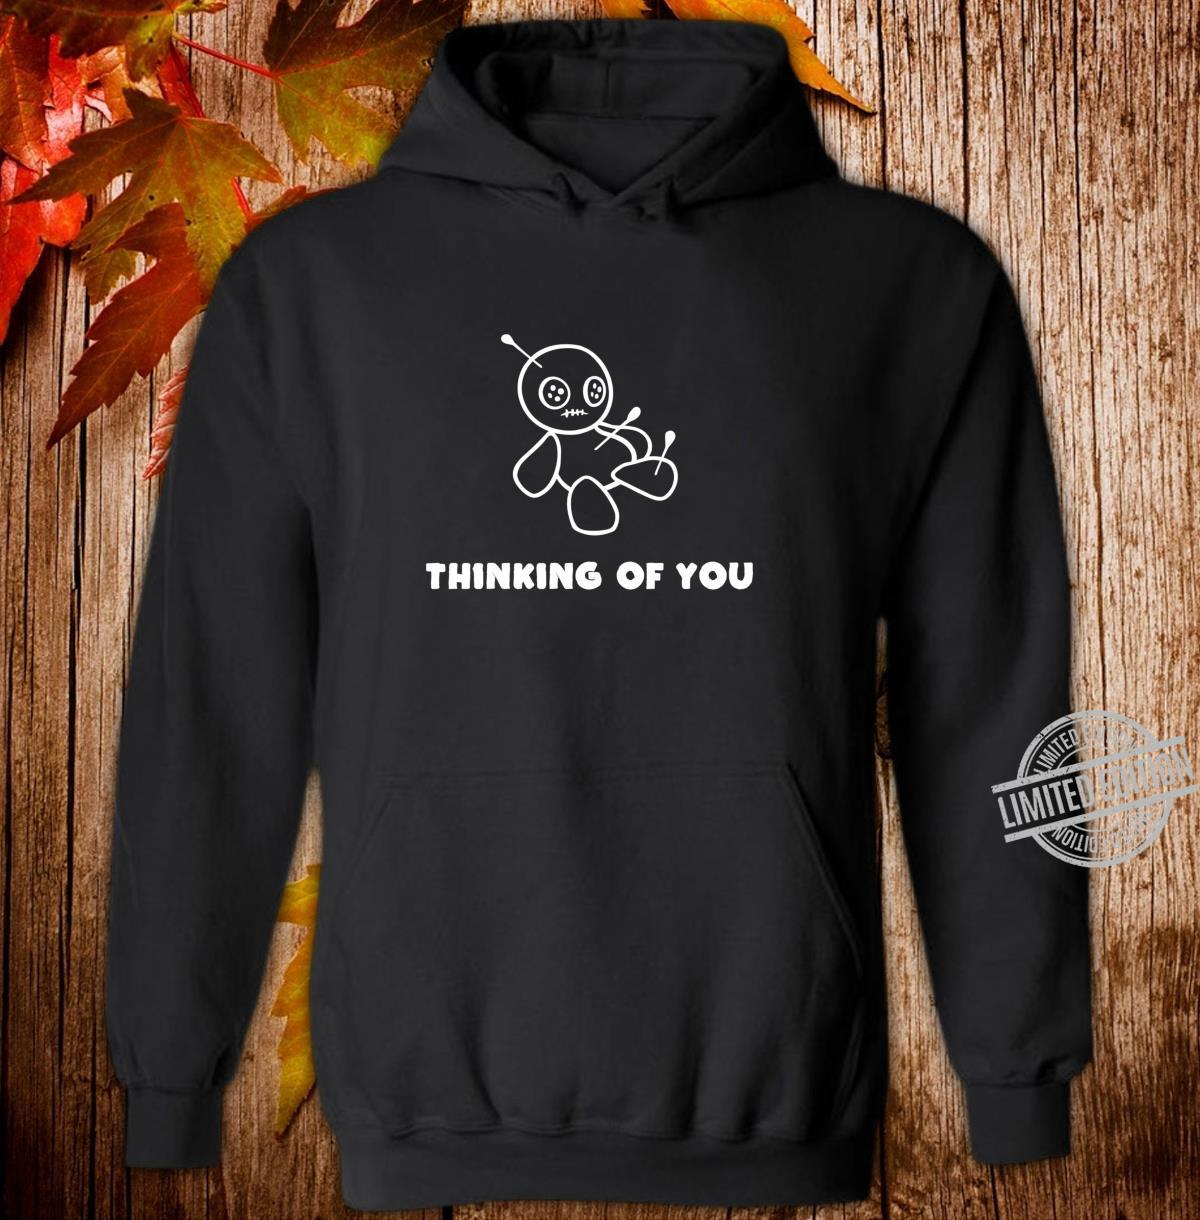 Thinking Of You Voodoo Puppe Denke an dich Shirt hoodie